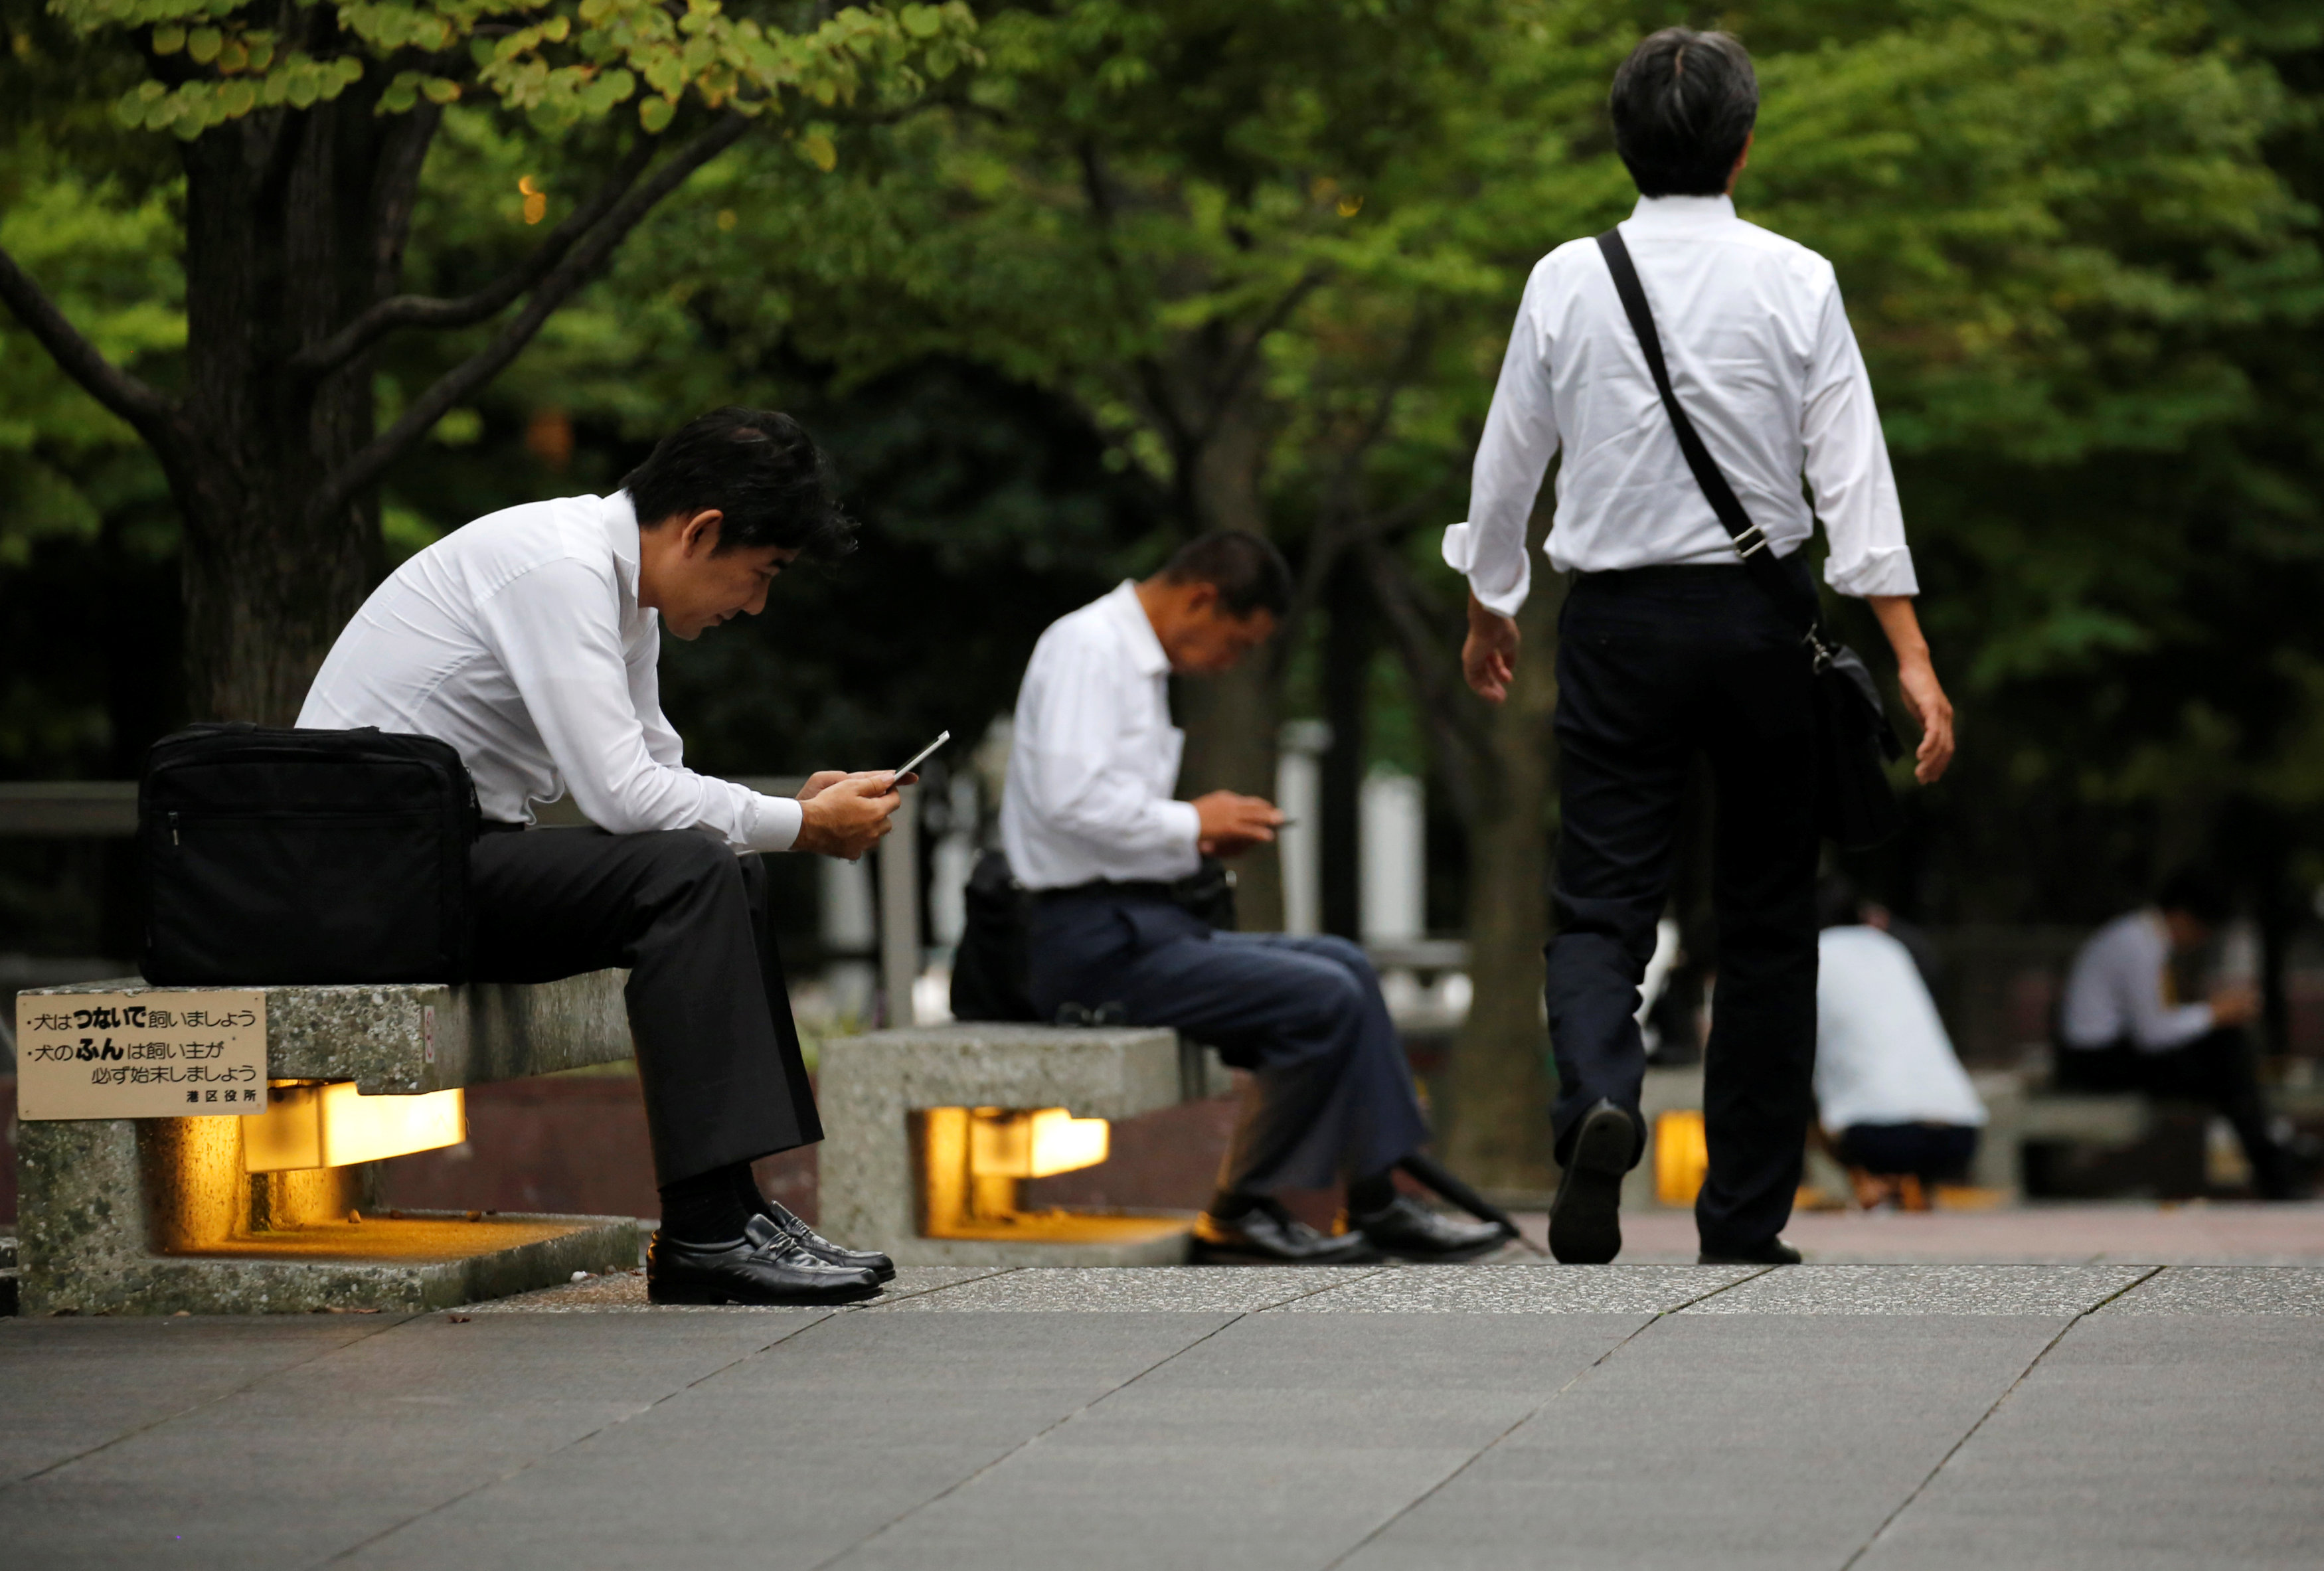 Low labor market mobility has limited overall wage gains, Capital Economics said in a recent report. | REUTERS